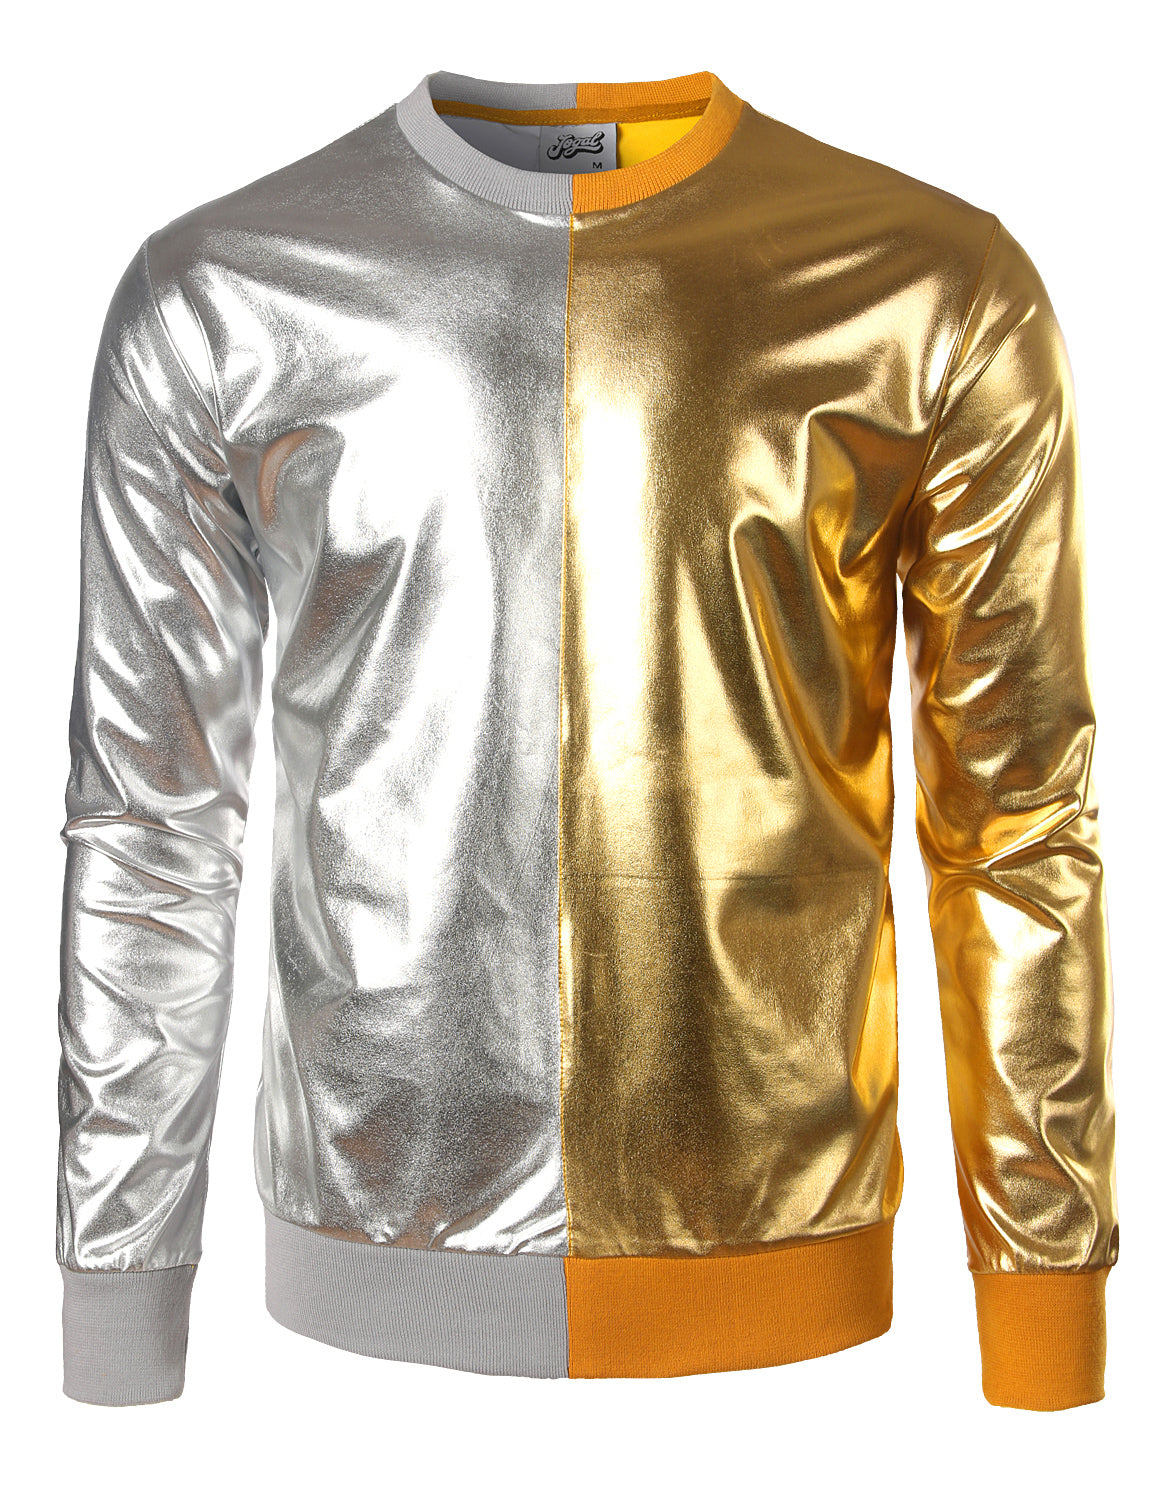 JOGAL Metallic Gold Shiny Shirts Nightclub Styles Hoodies